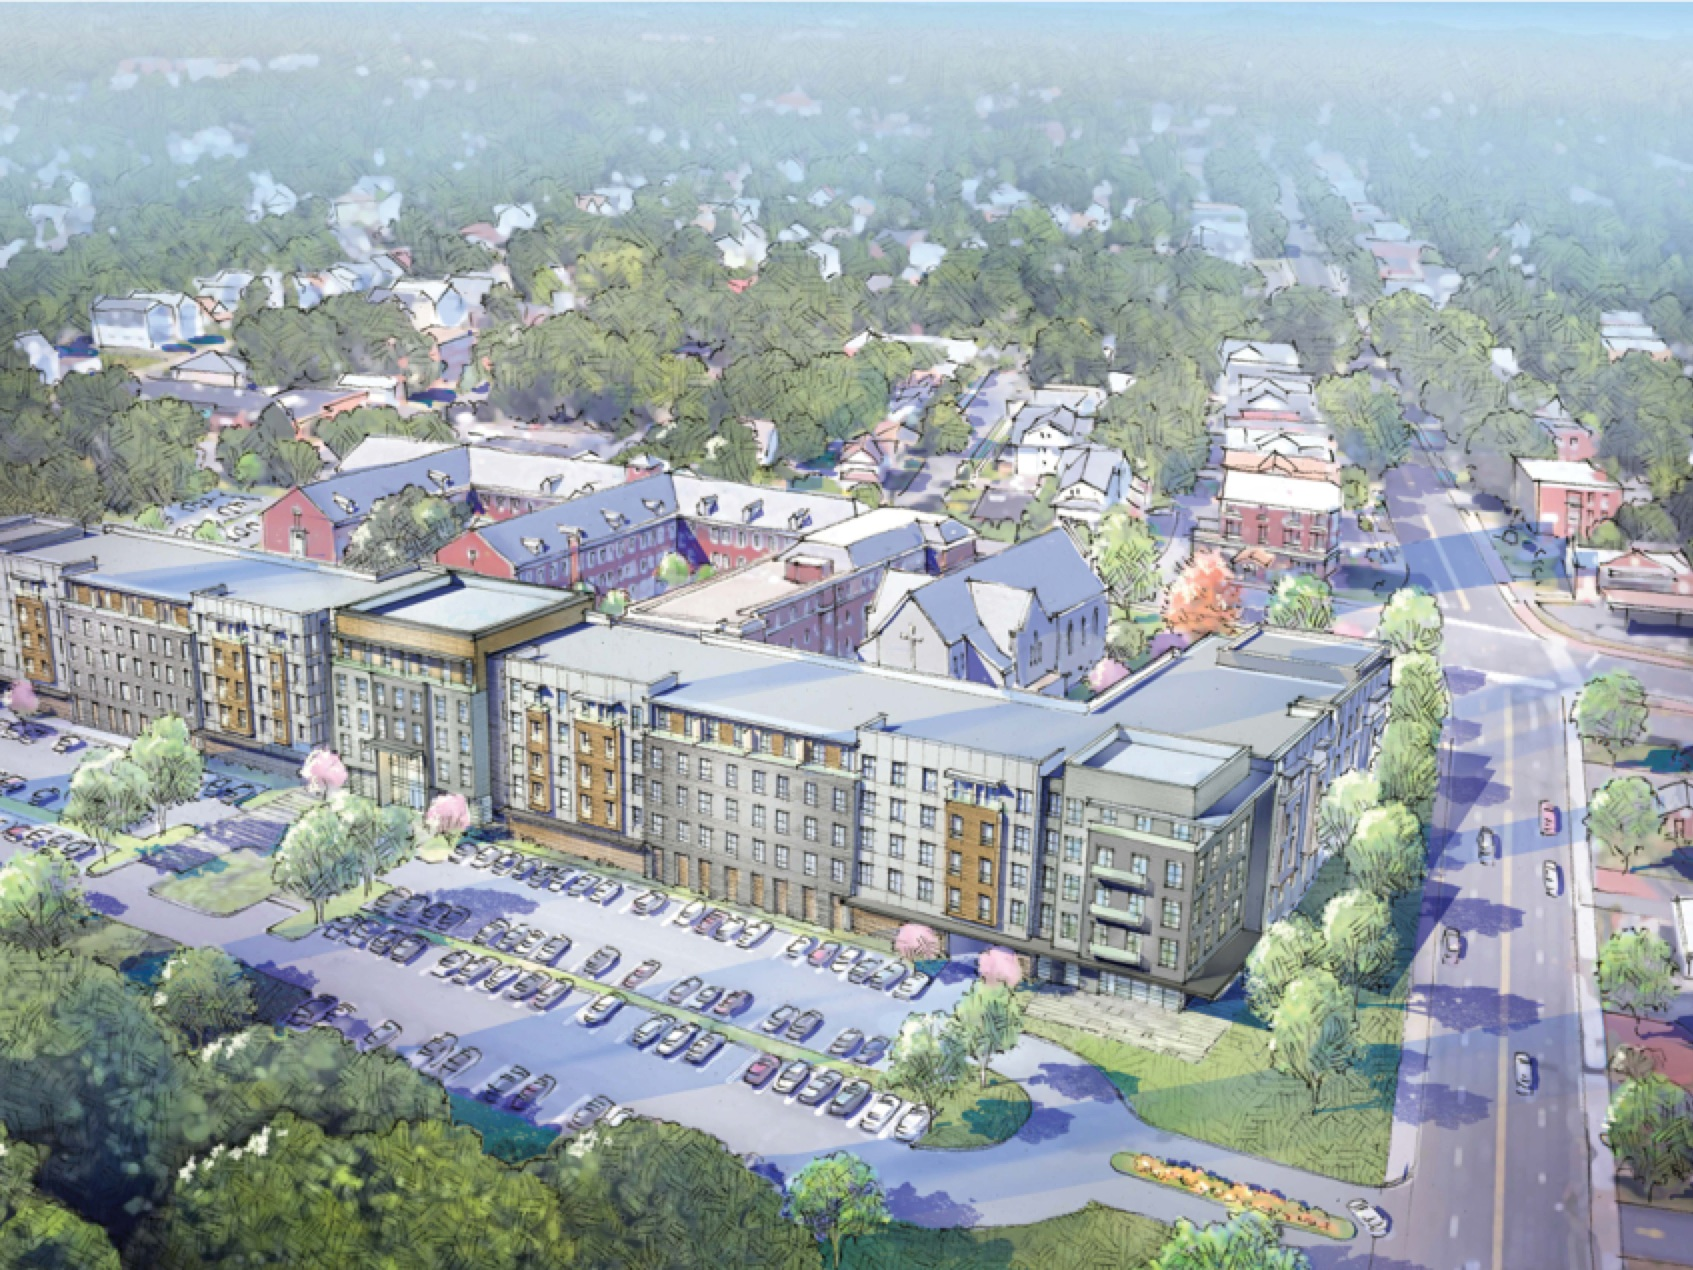 One Park Road - Lexington Partners, LLC – West Hartford, CTDeveloped and implemented the successful neighborhood outreach and engagement plan for the $60 million redevelopment of the Sisters of Saint Joseph Convent to 294 market-rate apartments. Project unanimously approved by the West Hartford Town Council.